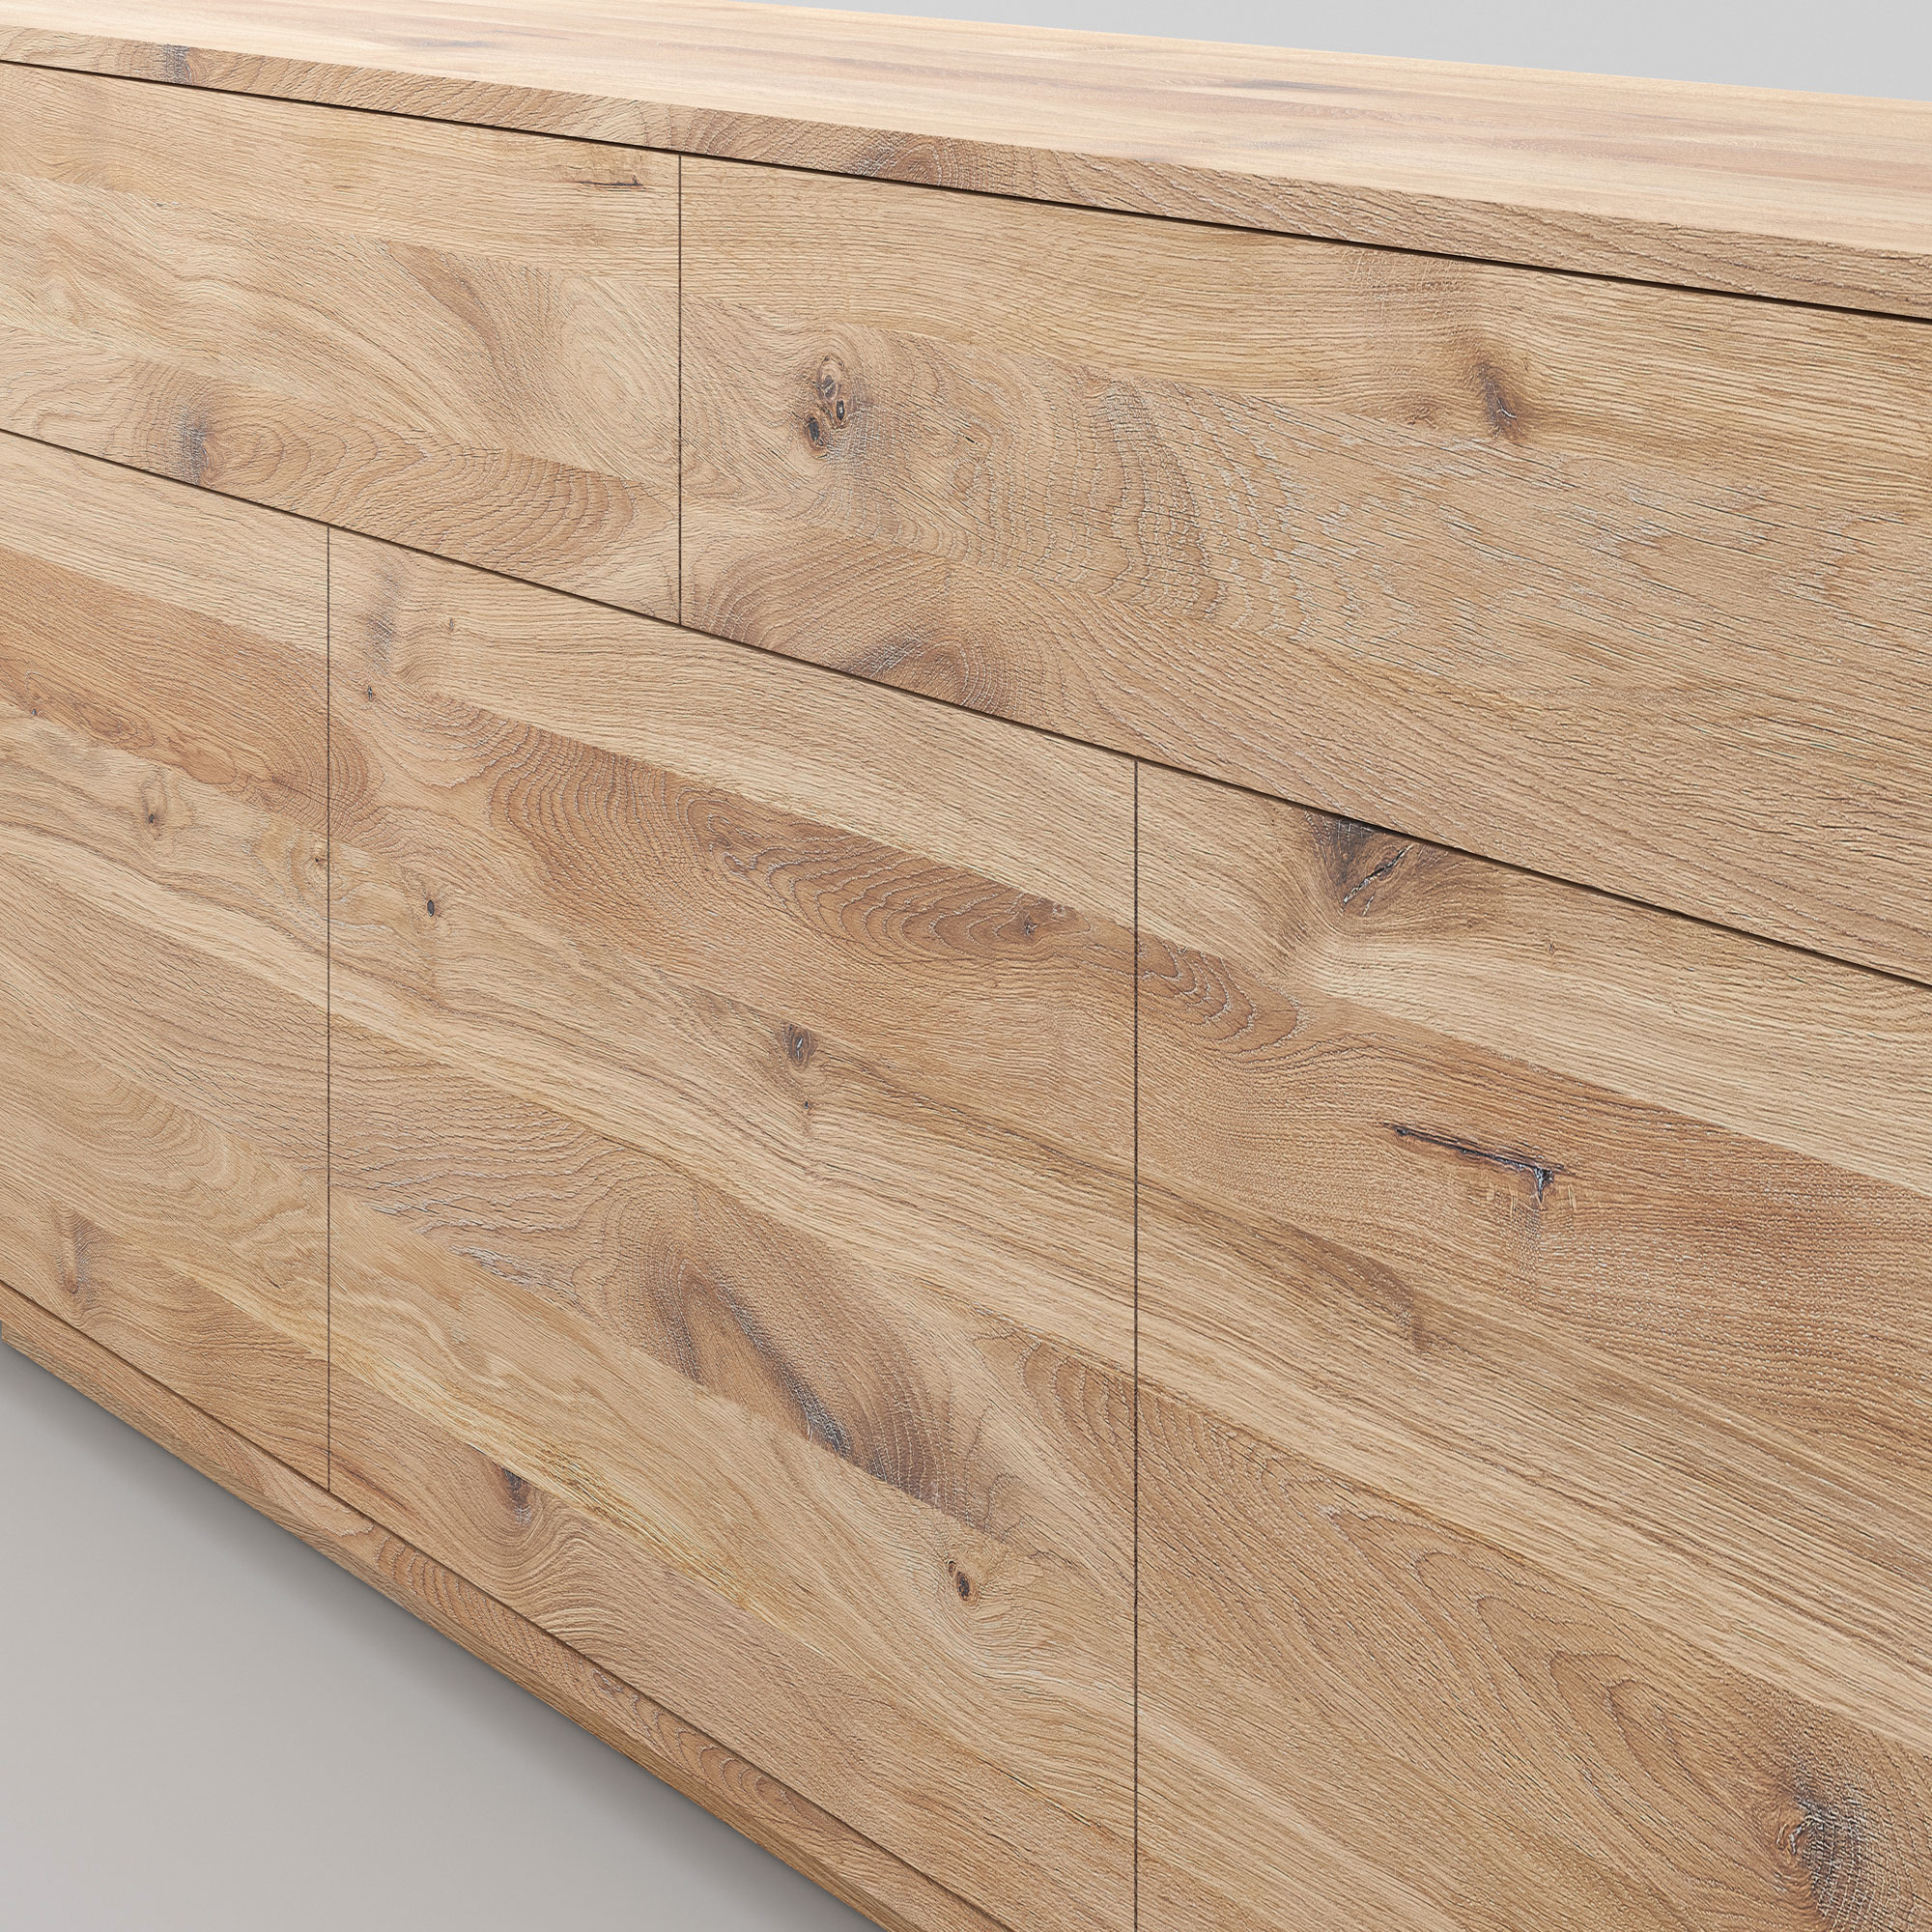 Wooden Designer Sideboard LINEA cam4 custom made in solid wood by vitamin design